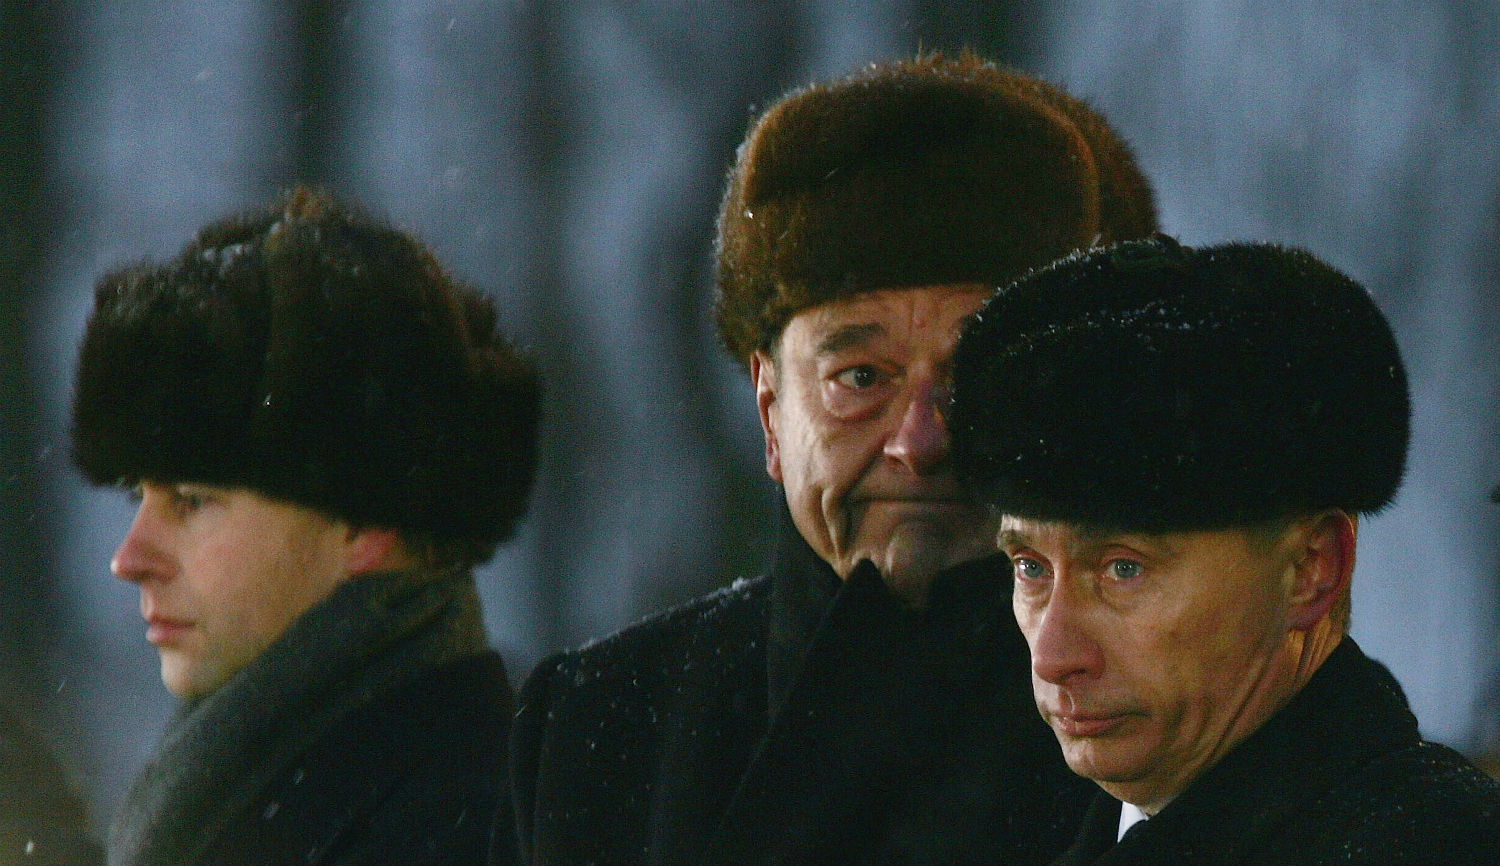 Vladimir Putin in a January 27, 2005 ceremony at Auschwitz, Poland, to mark the 60th anniversary of the liberation of the camp by the Soviet Red Army. Photo by Julian Herbert/Getty Images.